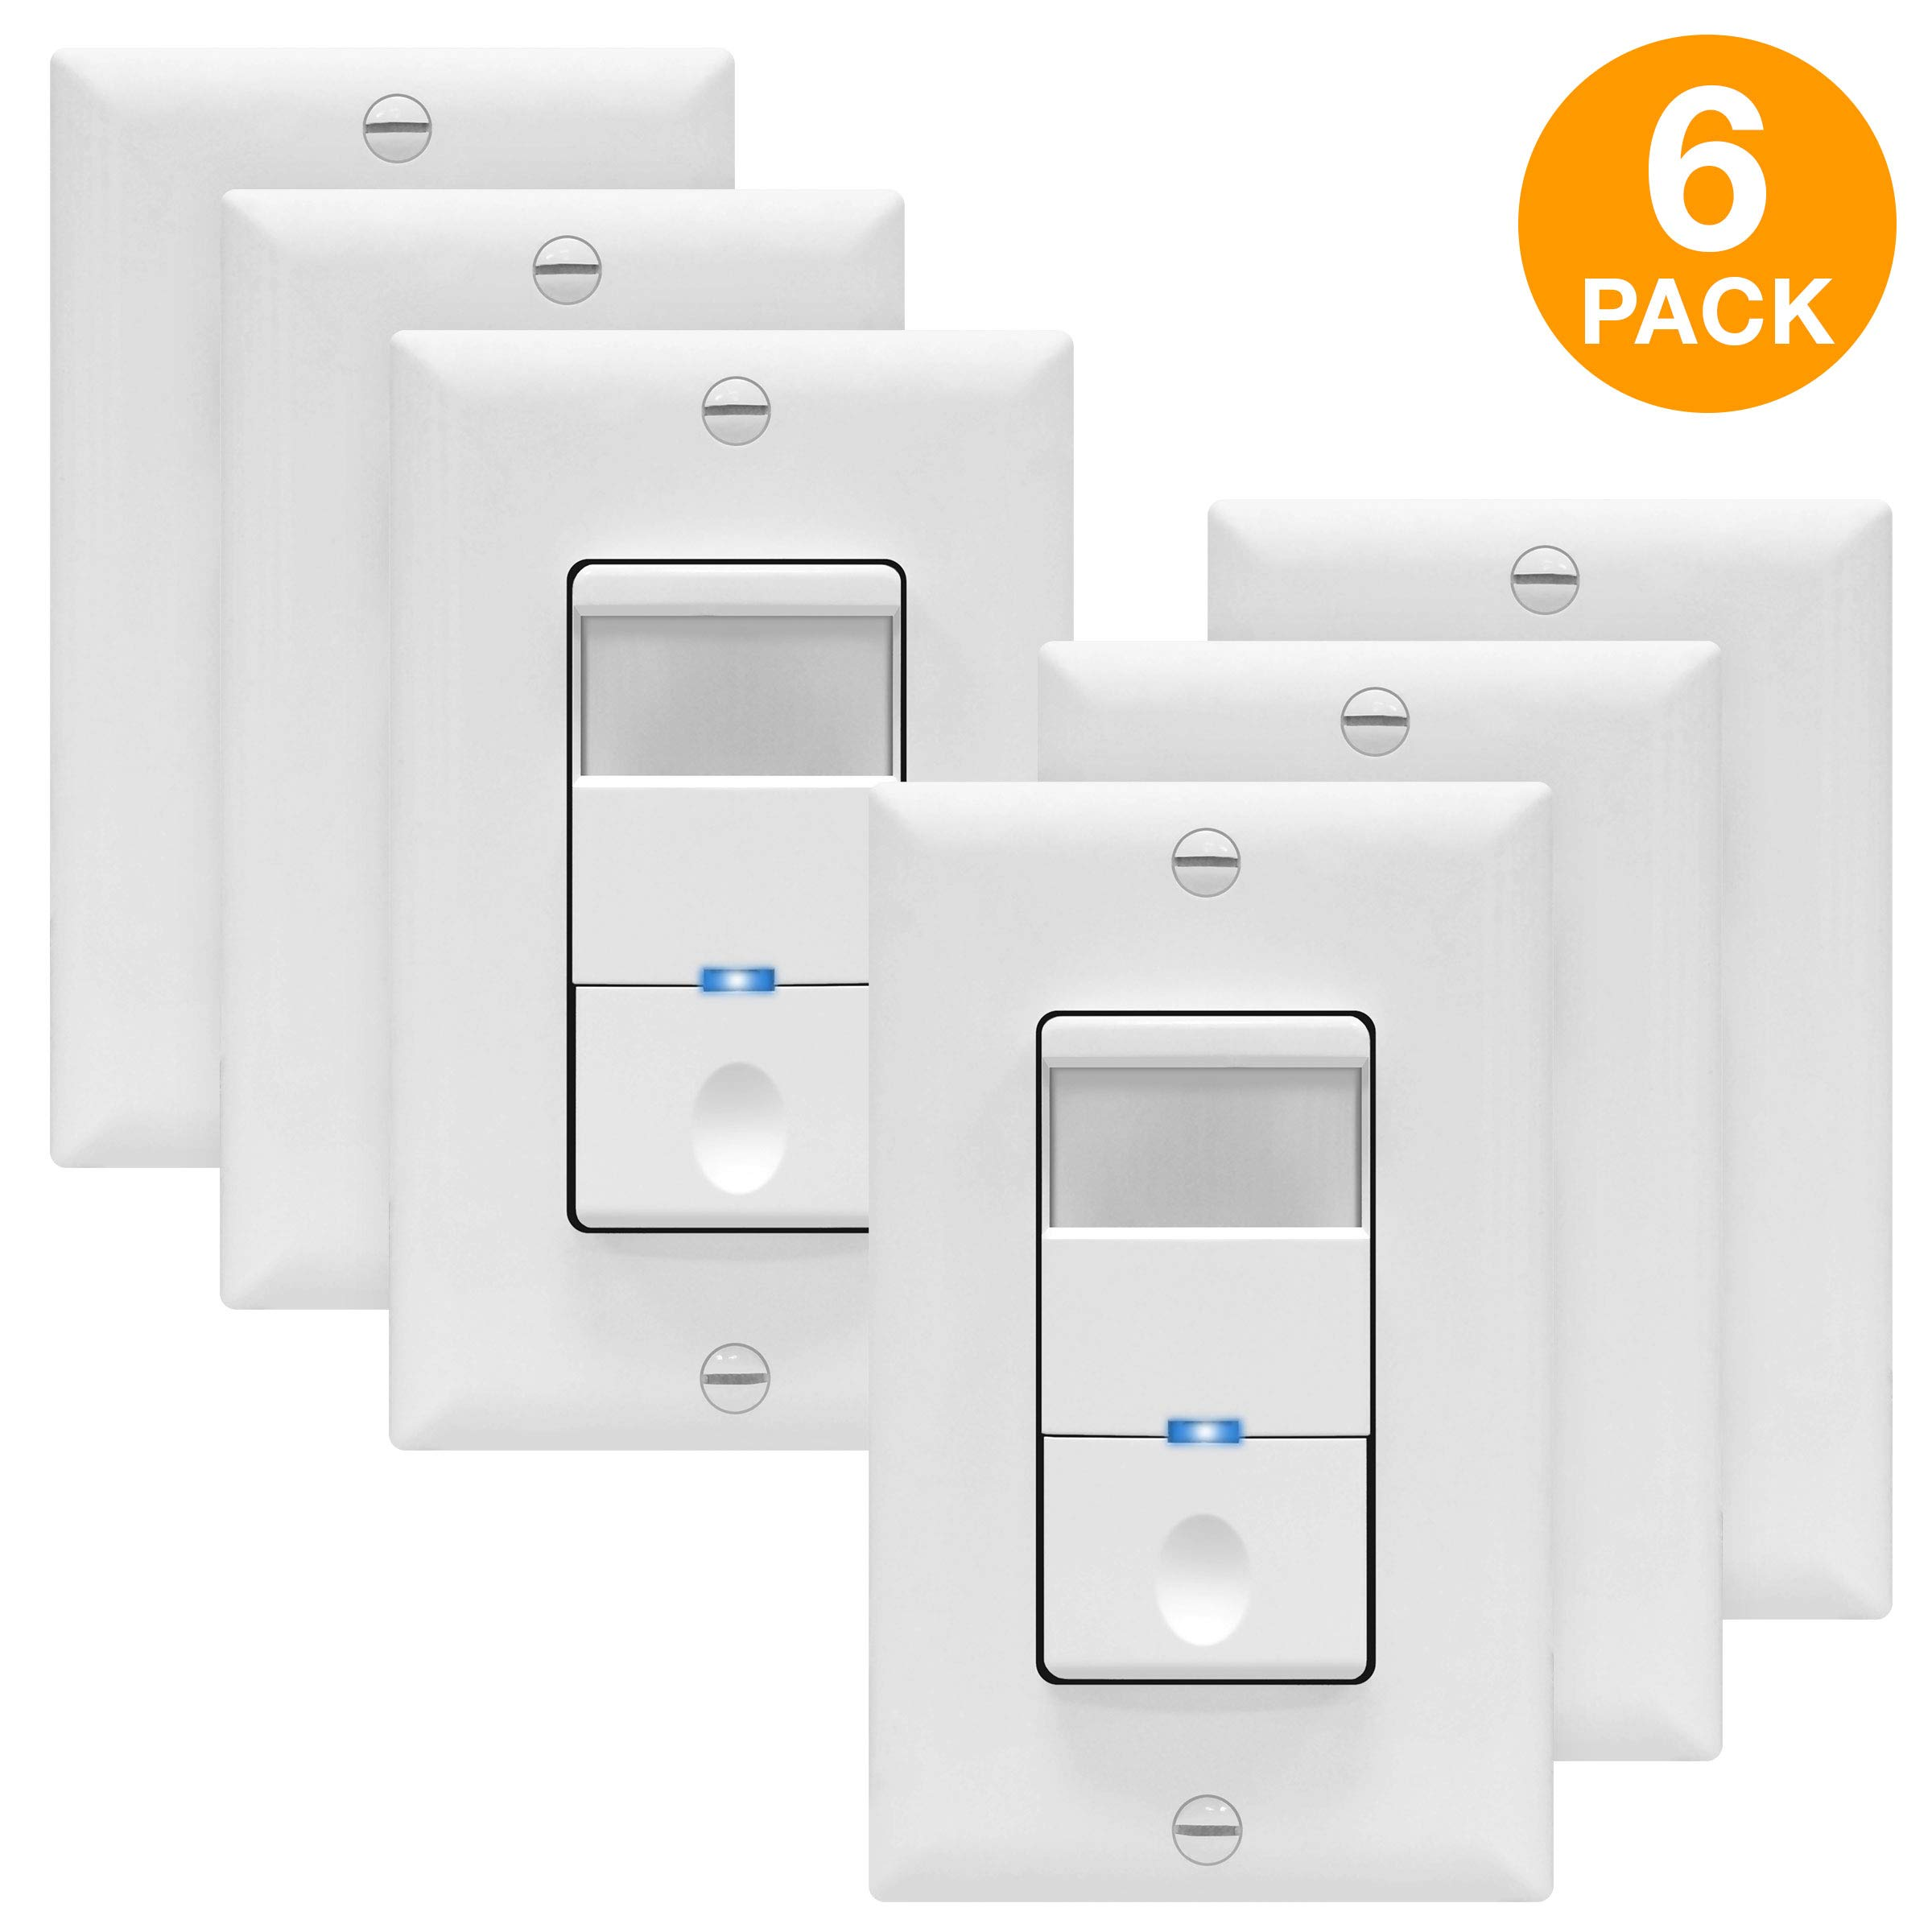 TOPGREENER Motion Sensor Switch, No Neutral Required, 4A, PIR Passive Infrared Sensor, Occupancy Sensor Wall Switch, 120-277VAC, 500W 1/8HP, Ground Wire Required, Single Pole, White, TDOS5-J, 6 Pack